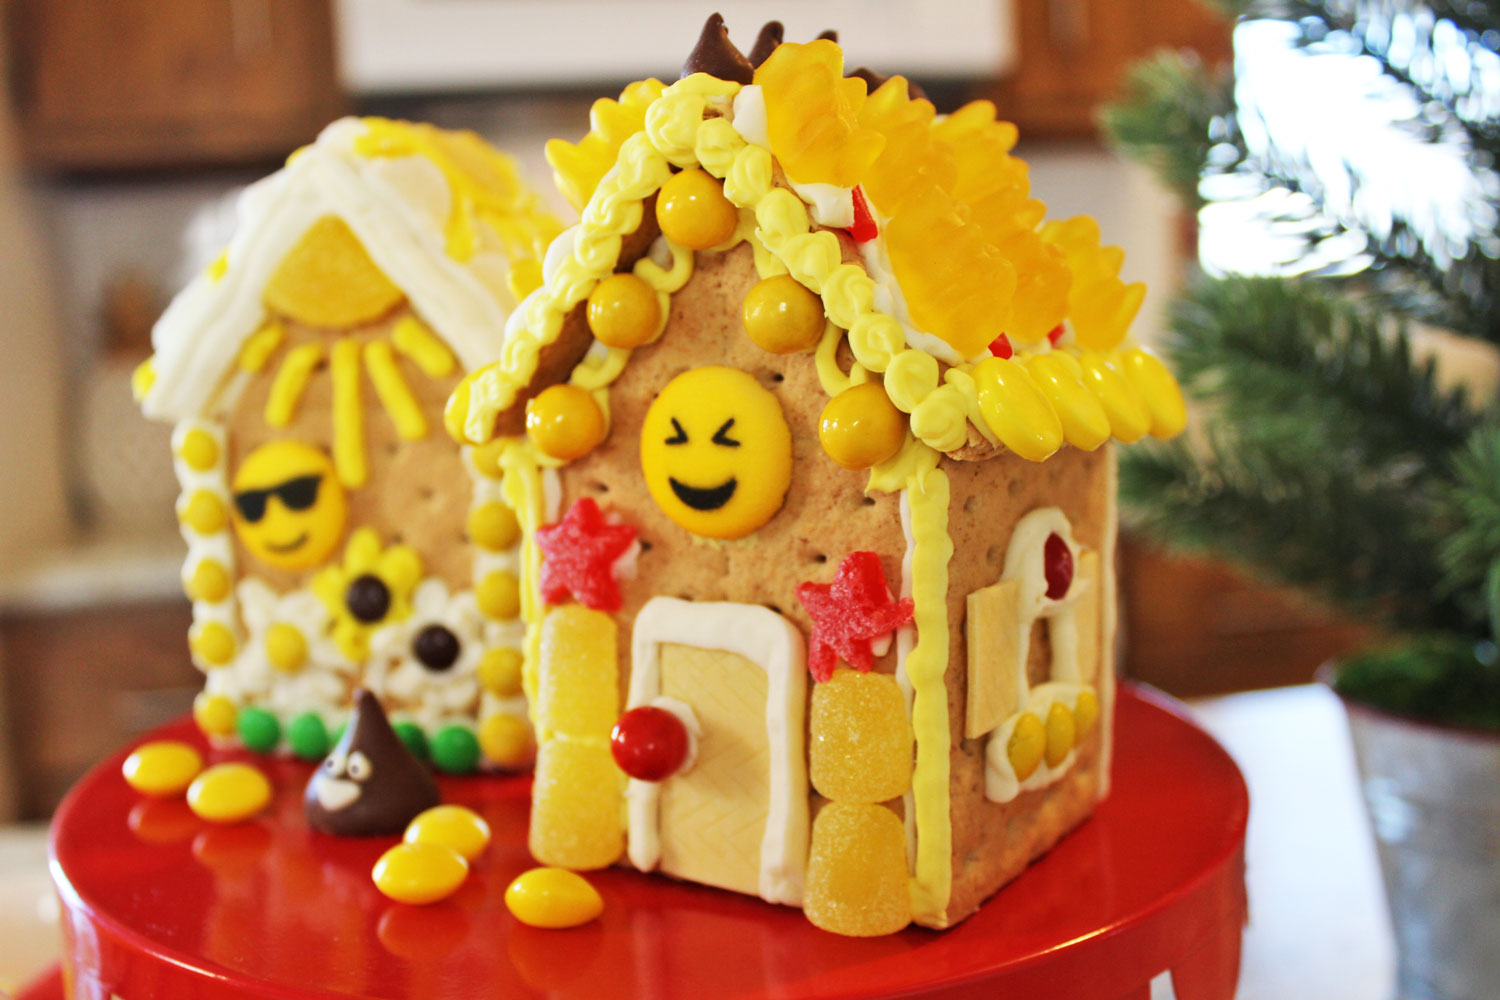 Emoji Birthday Party Idea: Decorate Emoji Gingerbread Houses PLUS DIY Build & Decorate kits!